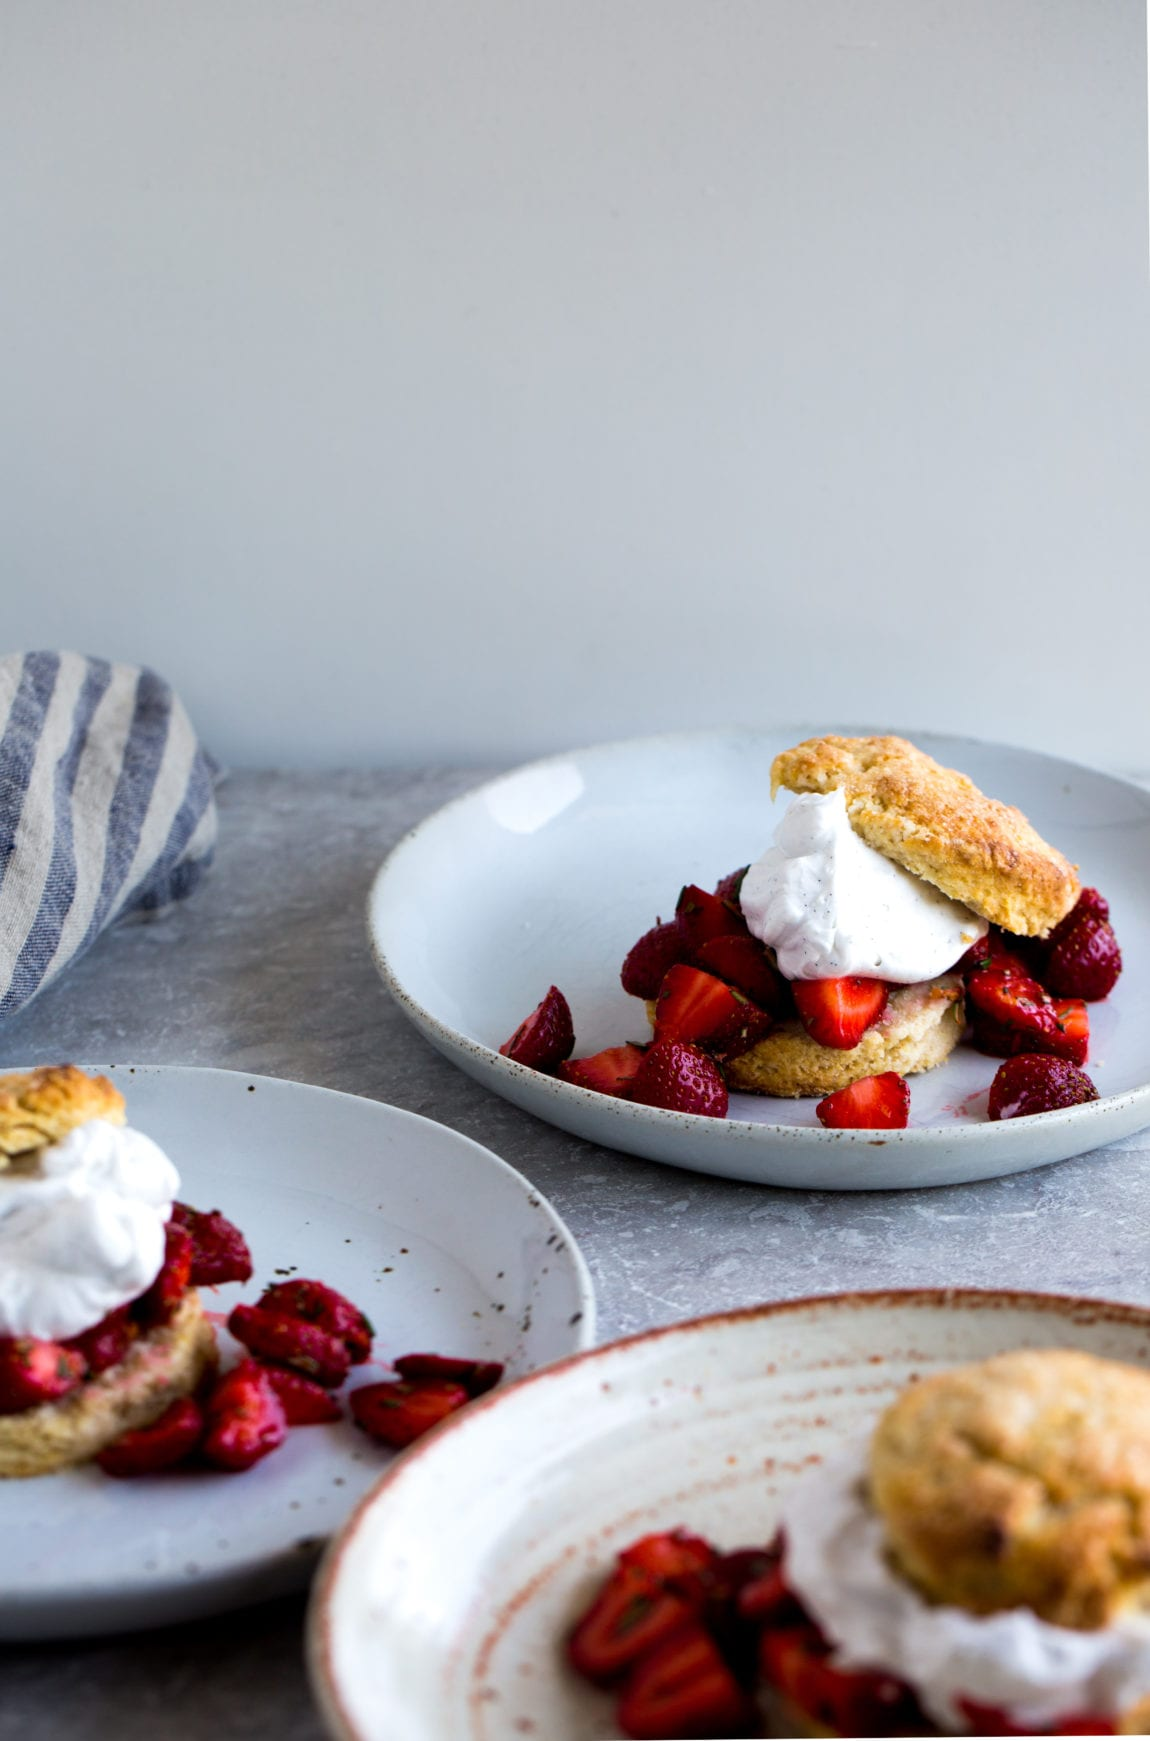 Barley & Rosemary Strawberry Shortcakes with Vanilla Bean Coconut Whipped Cream (vegan) | The Floured Kitchen